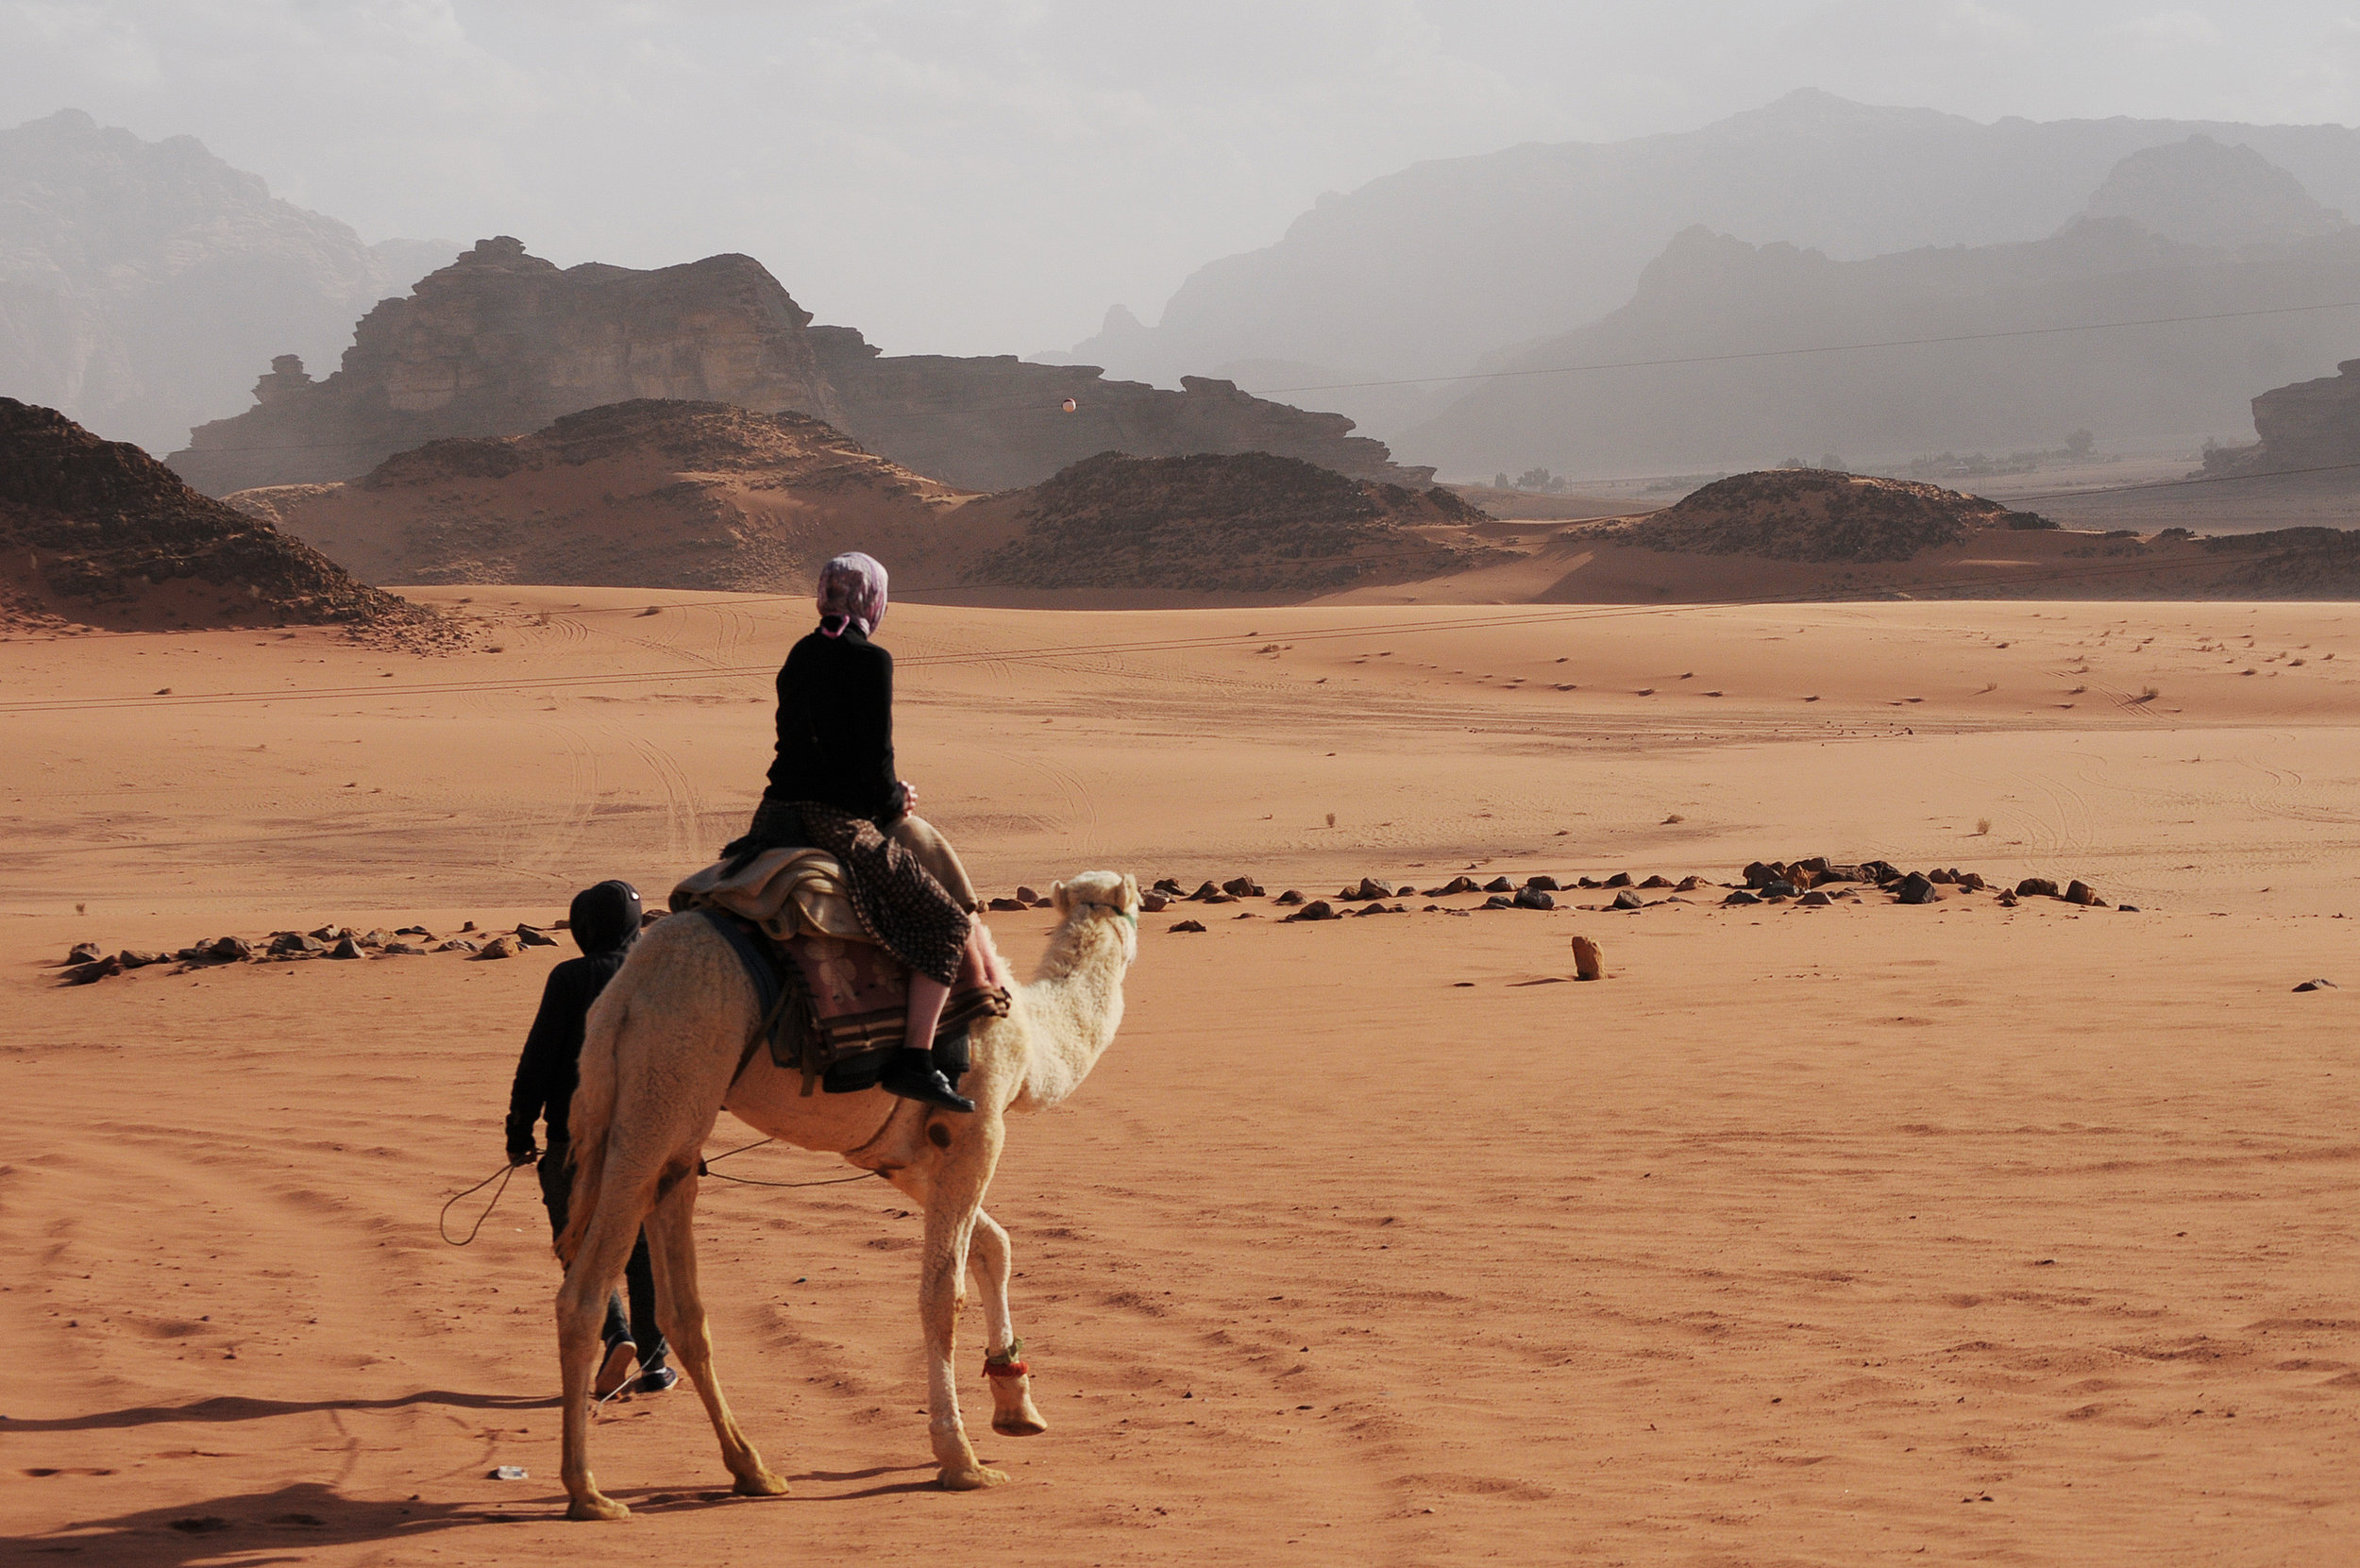 Jordan - Ride a camel through the Wadi Rum Desert and camp a night under the stars in Jordan!Next Experience: 14th March - 22nd March 2020Experiences from £1849Deposit £200